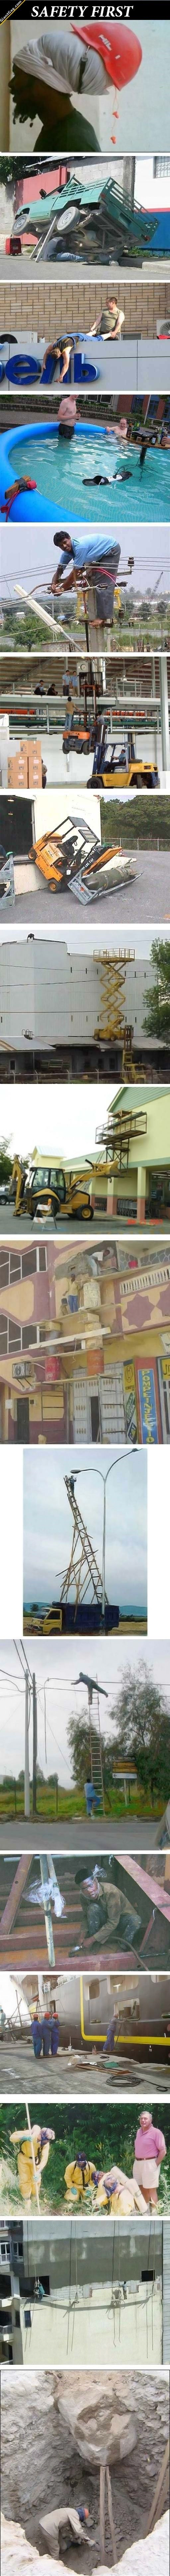 9GAG - Safety First!